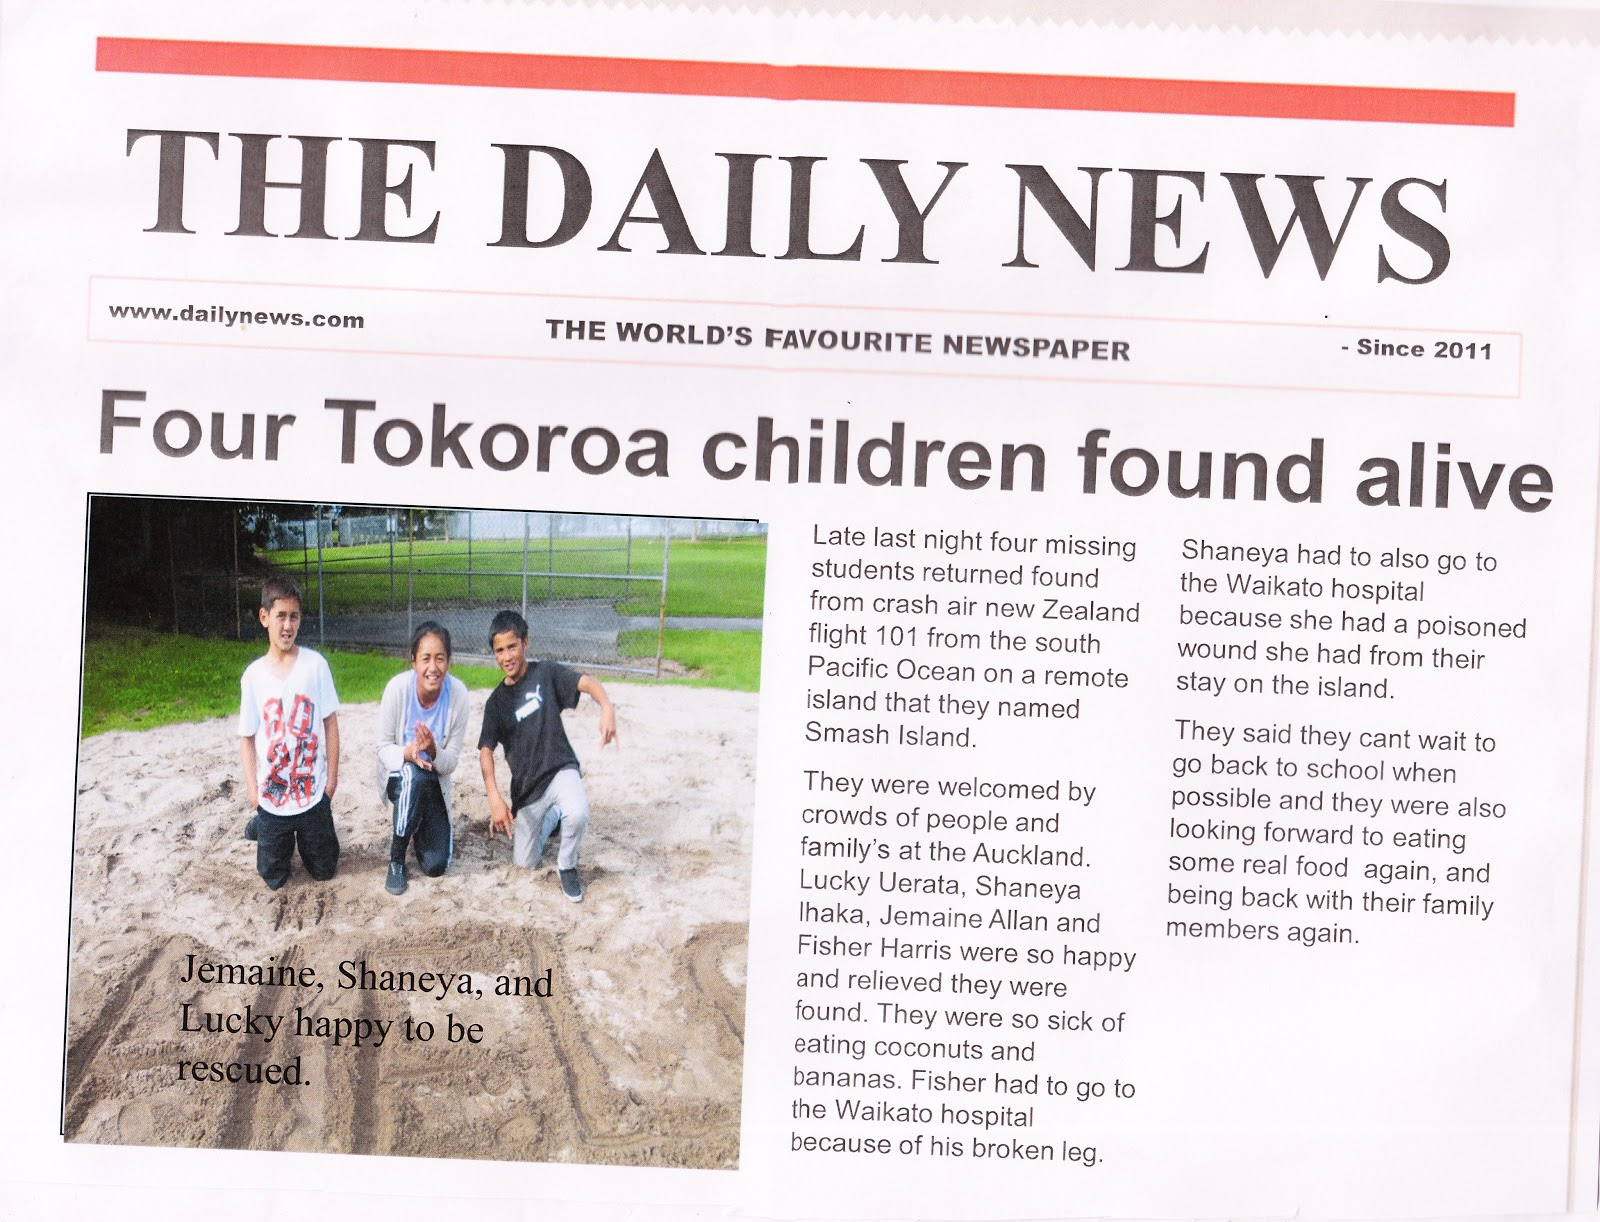 We wrote some about the japanese tsunami and christchurch earthquake